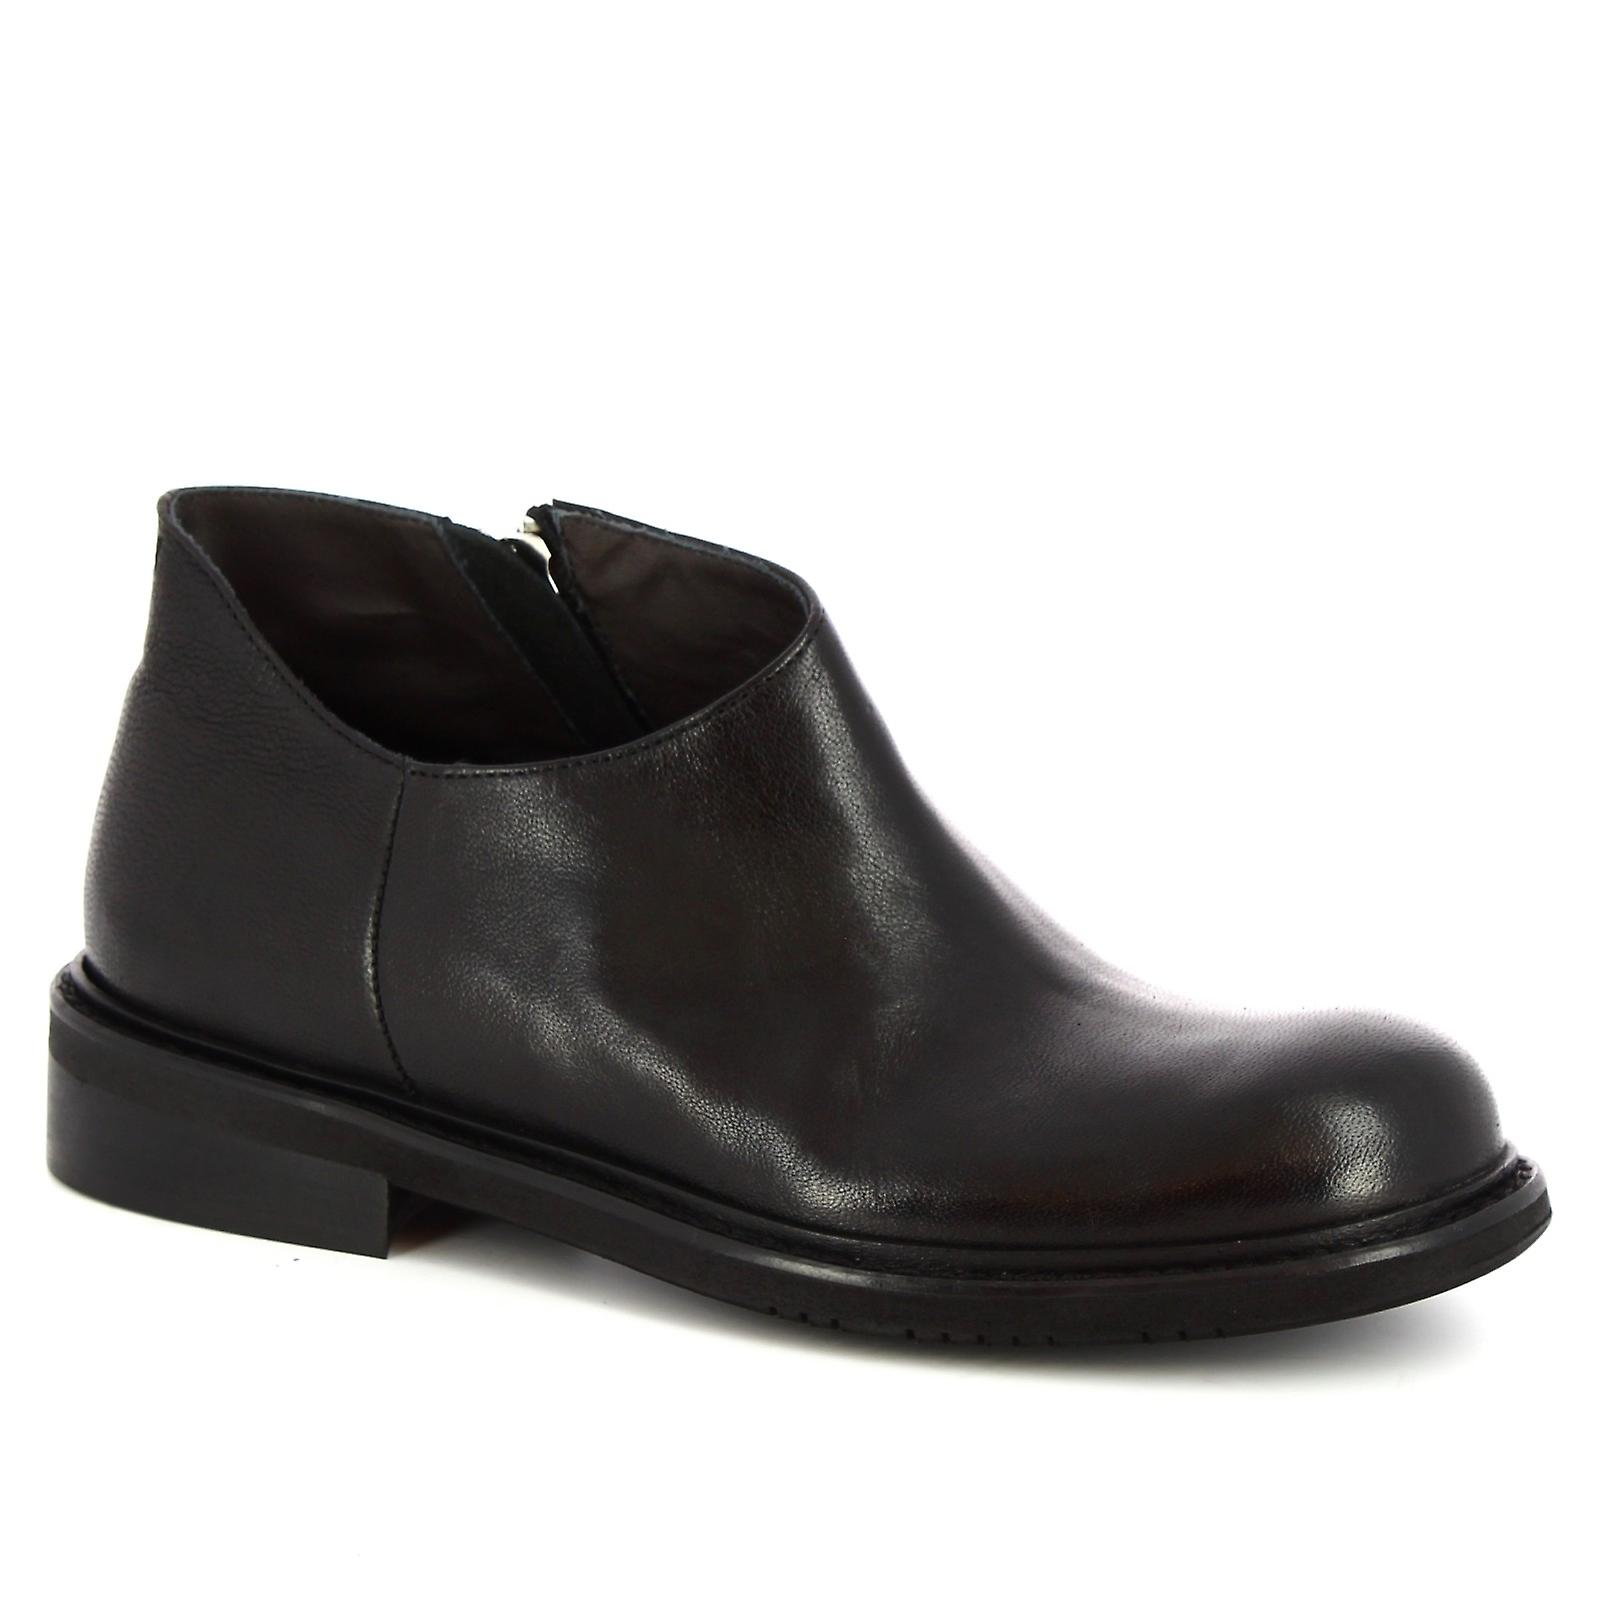 Leonardo Shoes Women's handmade ankle boots in black calf leather with zip